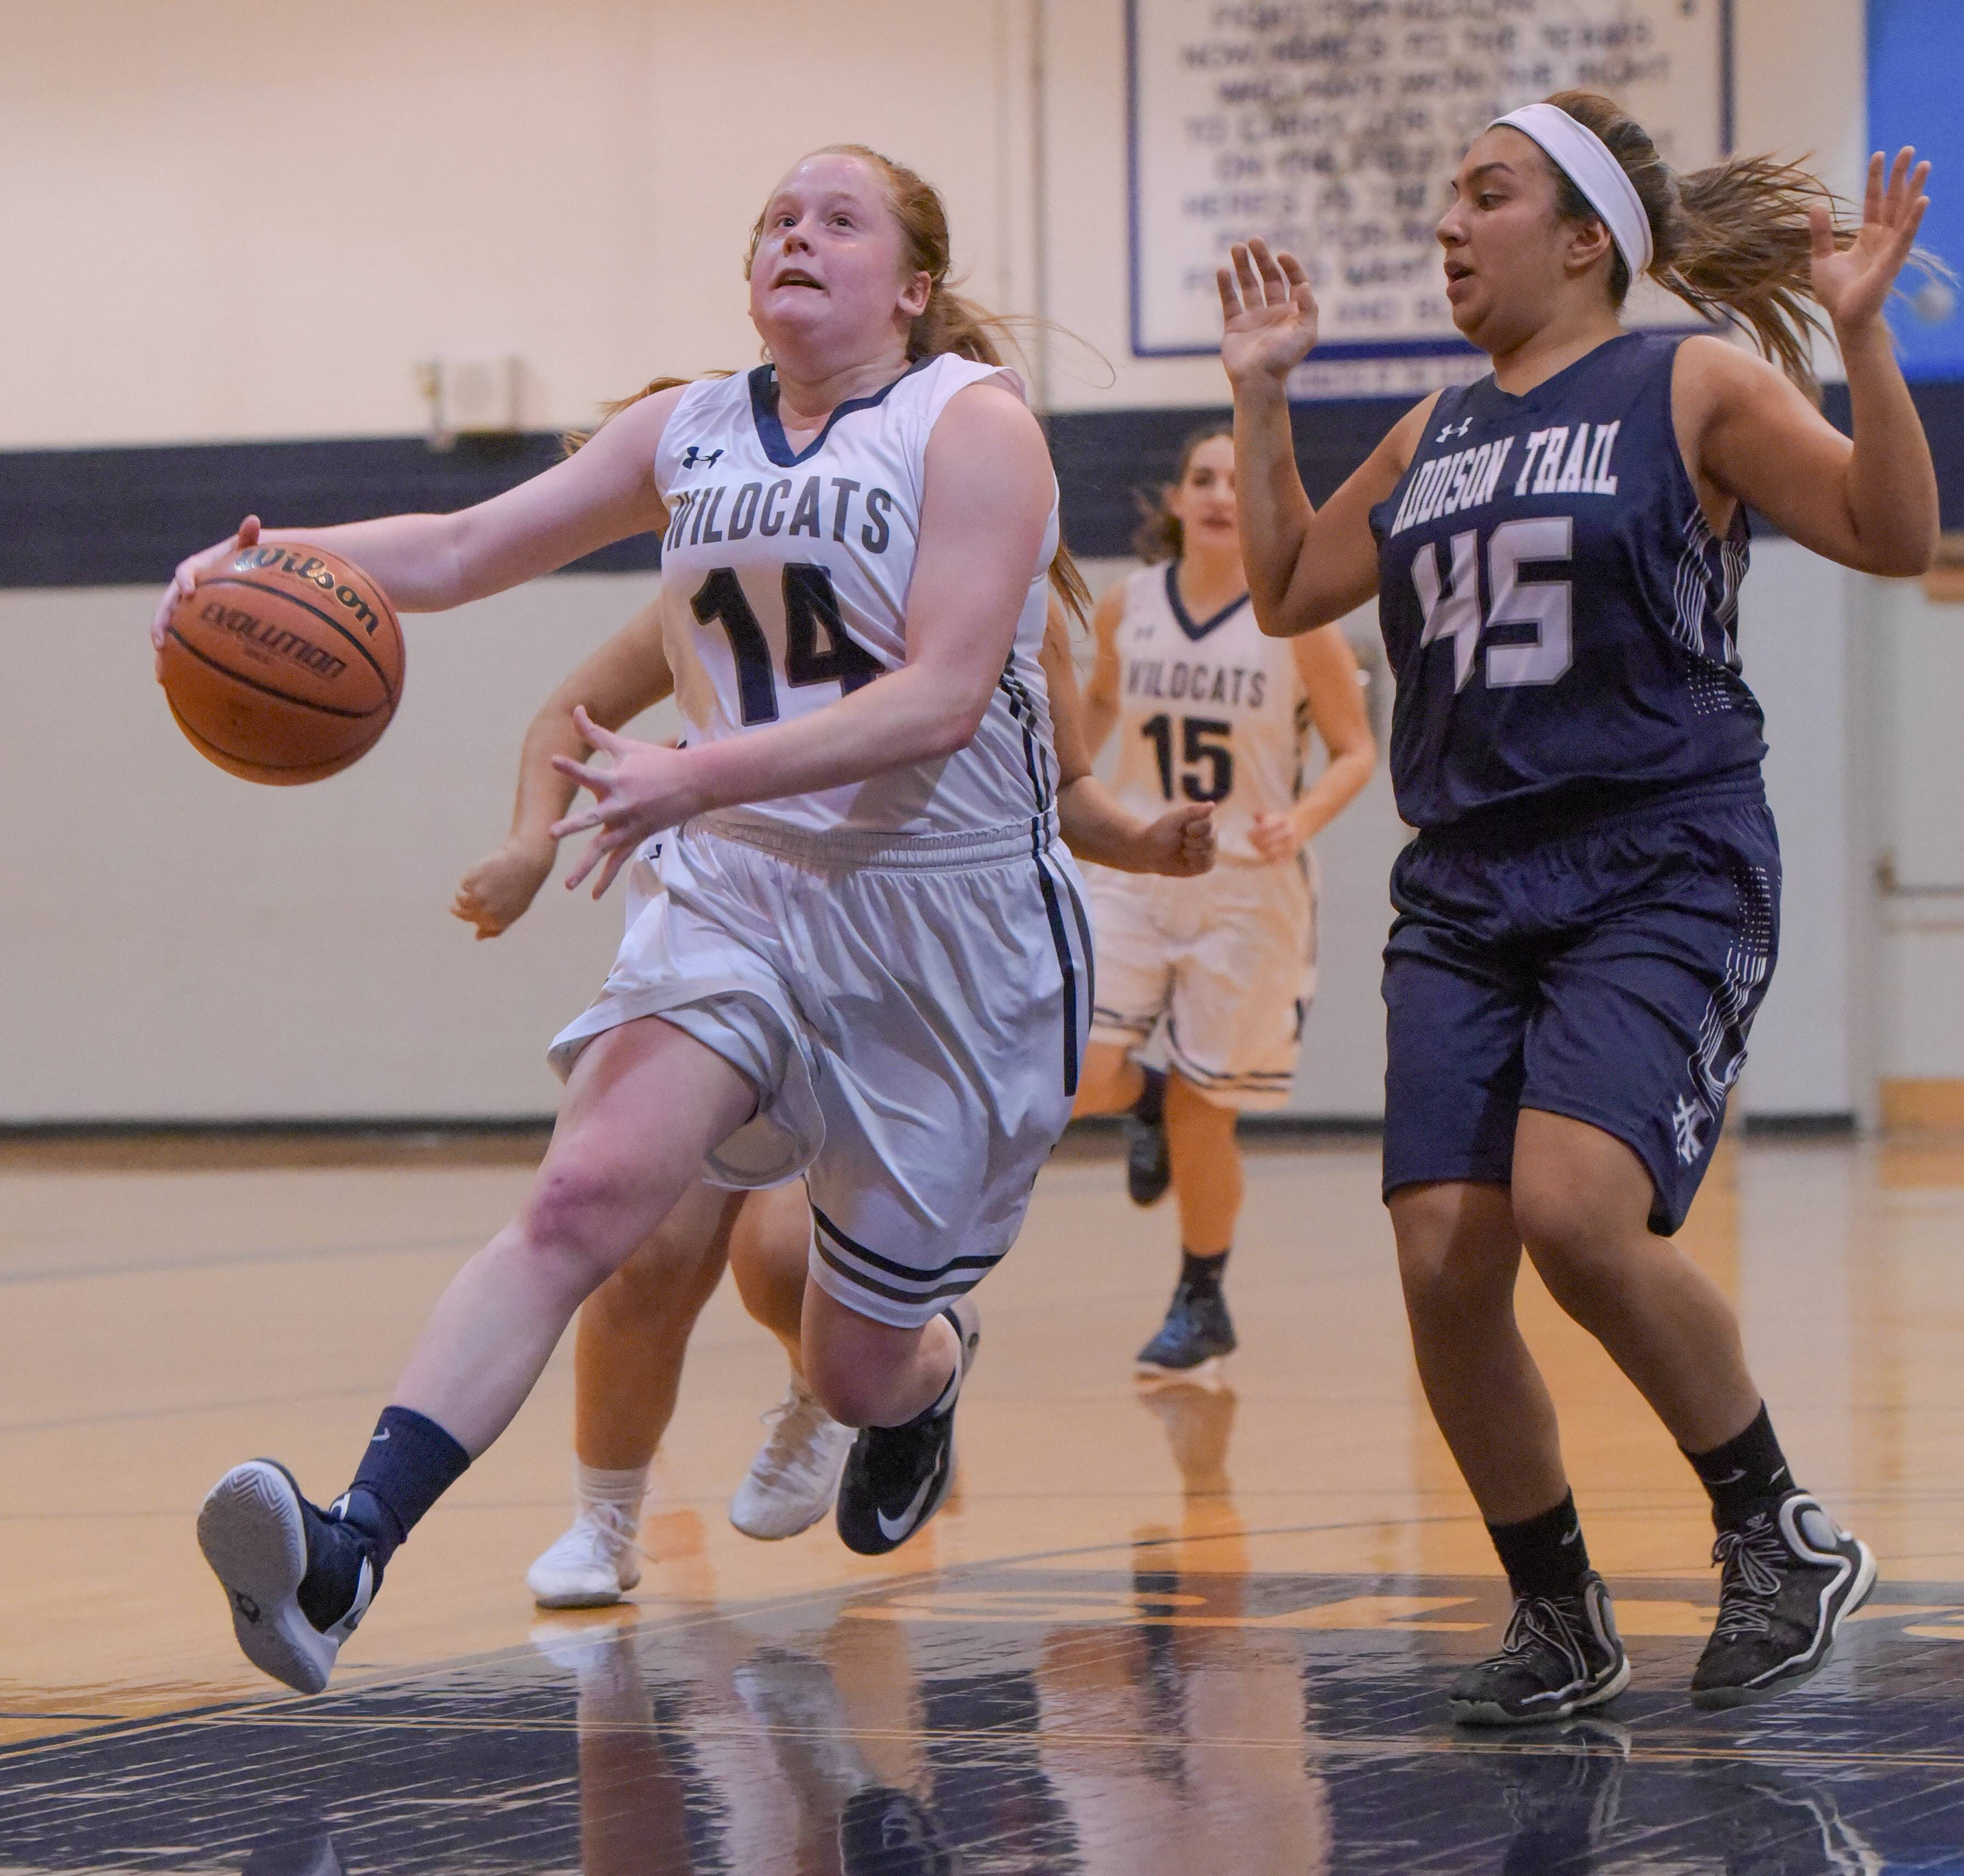 West Chicago's Sam Wiegele (14) drives toward the hoop after getting past Addison Trail's Berenice Berumen (45) during varsity girls basketball in West Chicago on January 9, 2018.